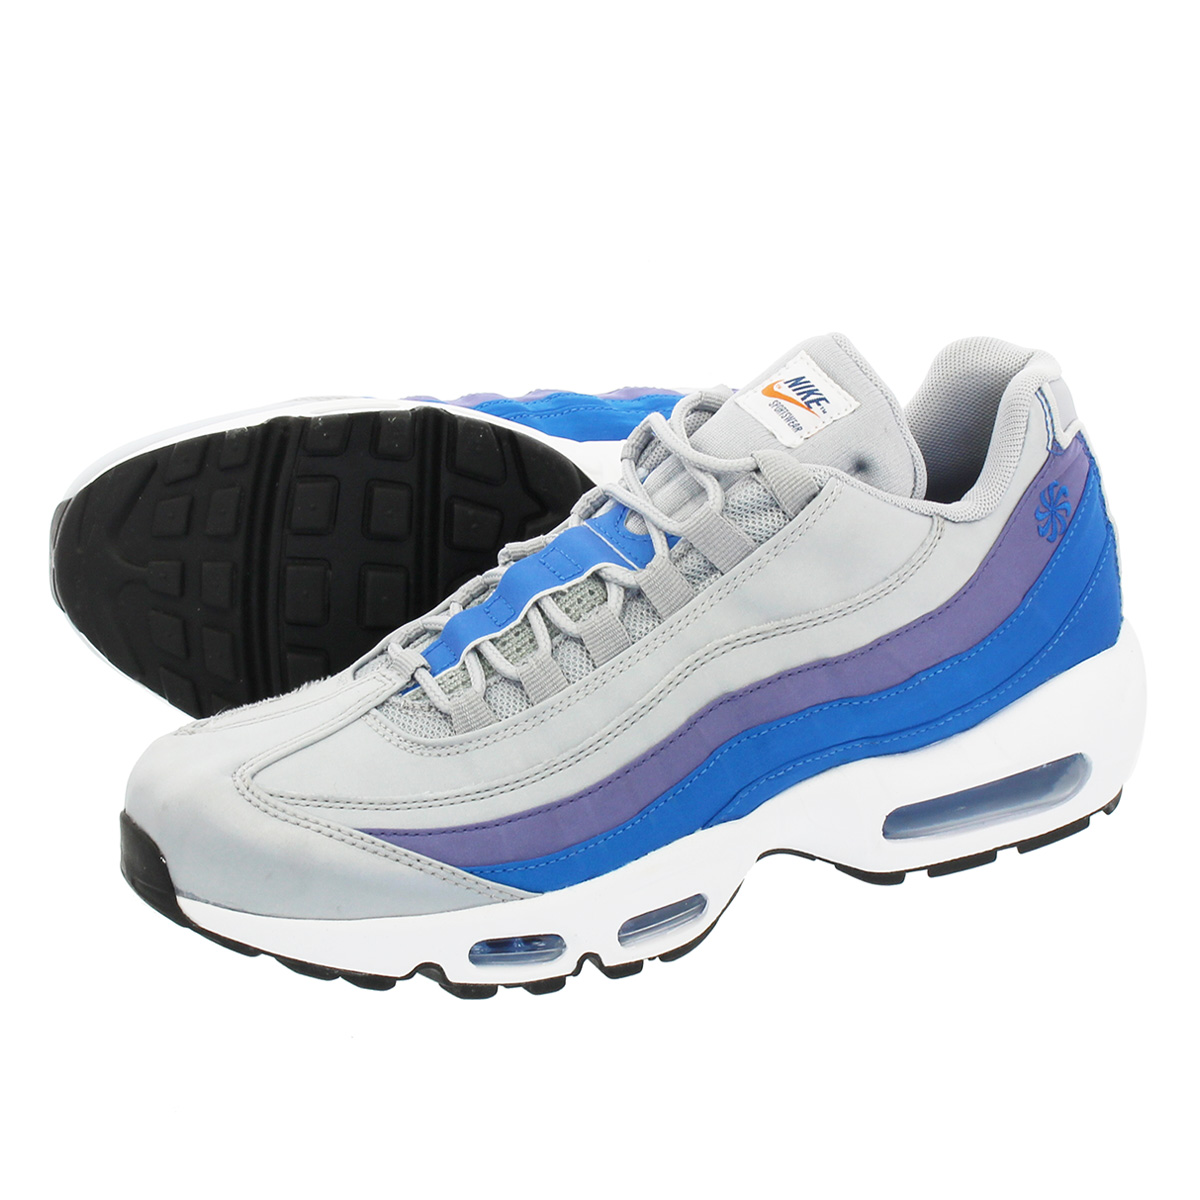 NIKE AIR MAX 95耐吉空氣最大95 WOLF GREY BLUE NEBULA PURPLE SLATE WHITE aj2018-001 339a61e7ab